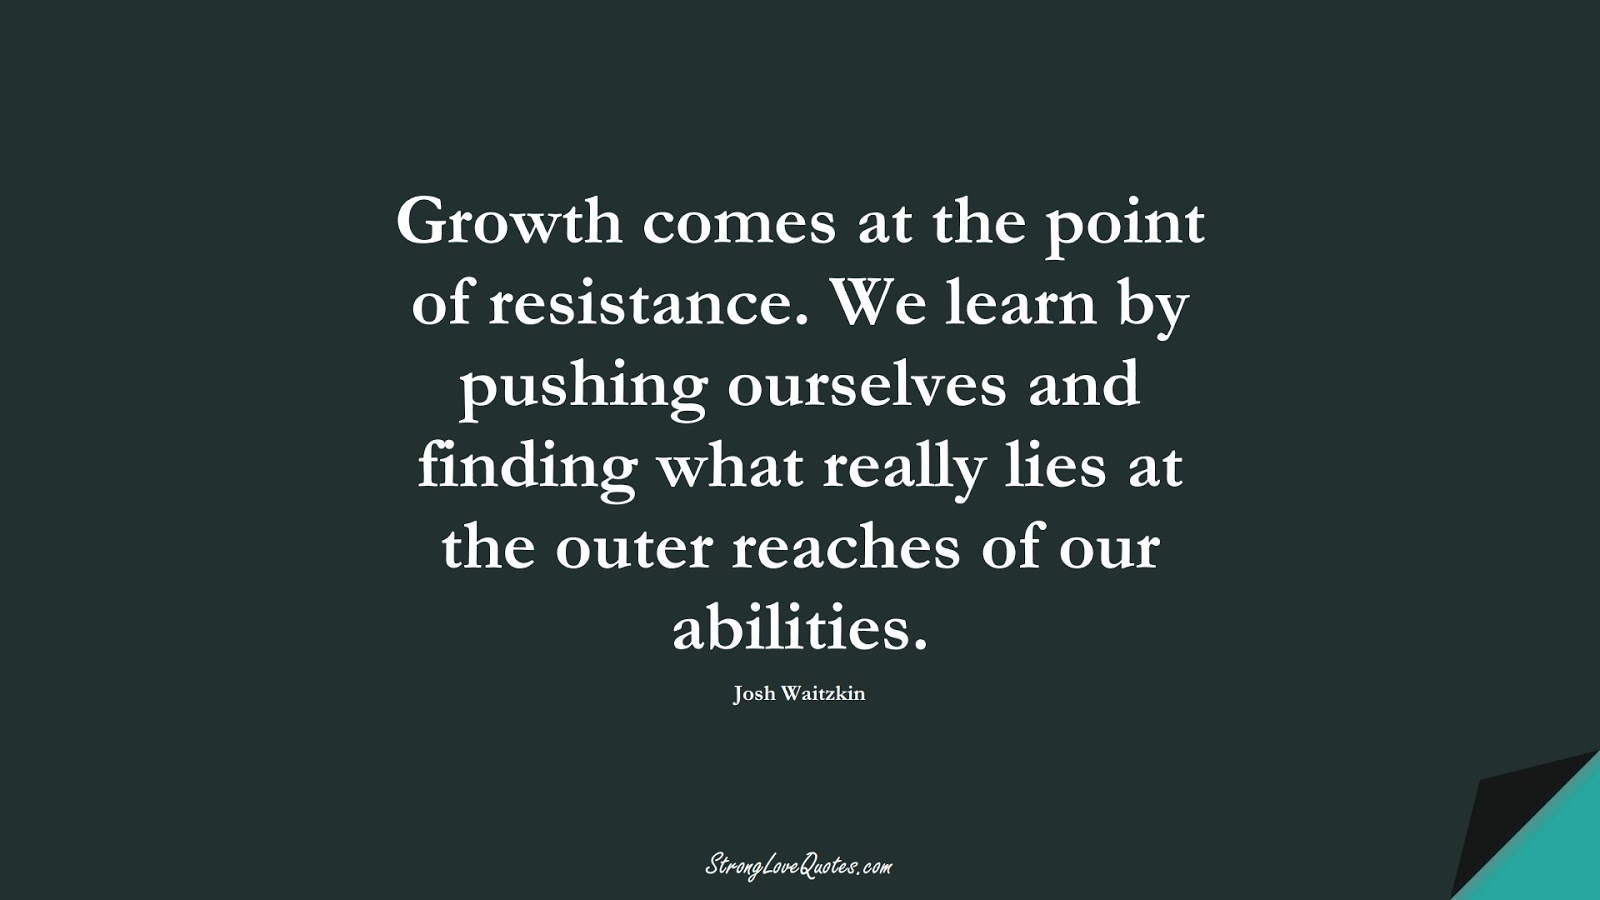 Growth comes at the point of resistance. We learn by pushing ourselves and finding what really lies at the outer reaches of our abilities. (Josh Waitzkin);  #LearningQuotes